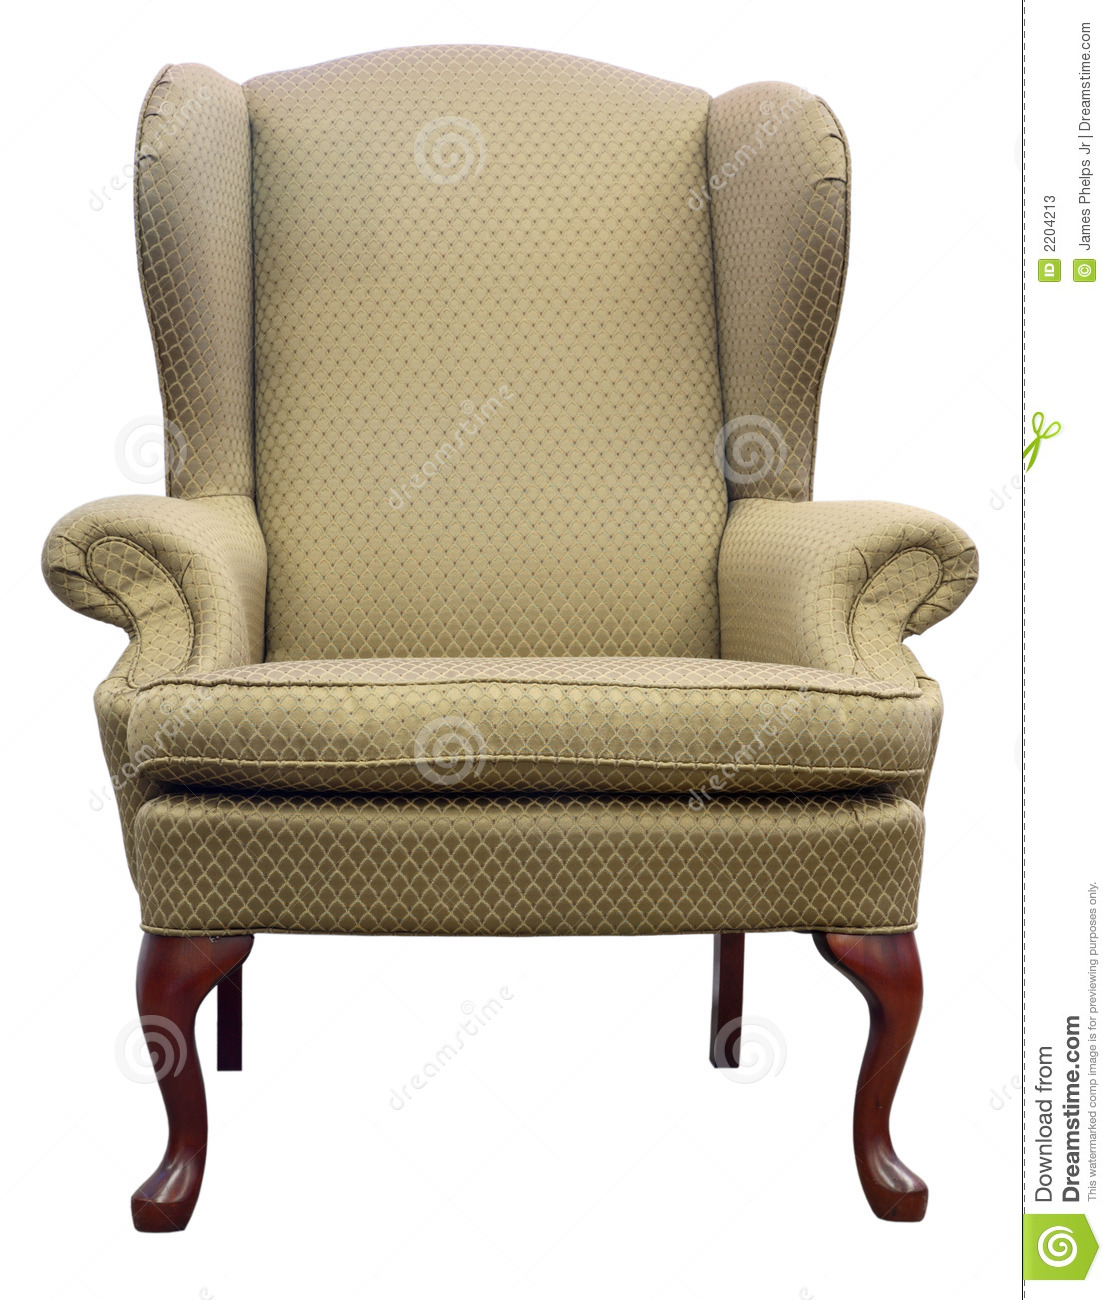 Queen Anne Wingback Chair Queen Anne Wing Chair Stock Image Image Of Anne Design